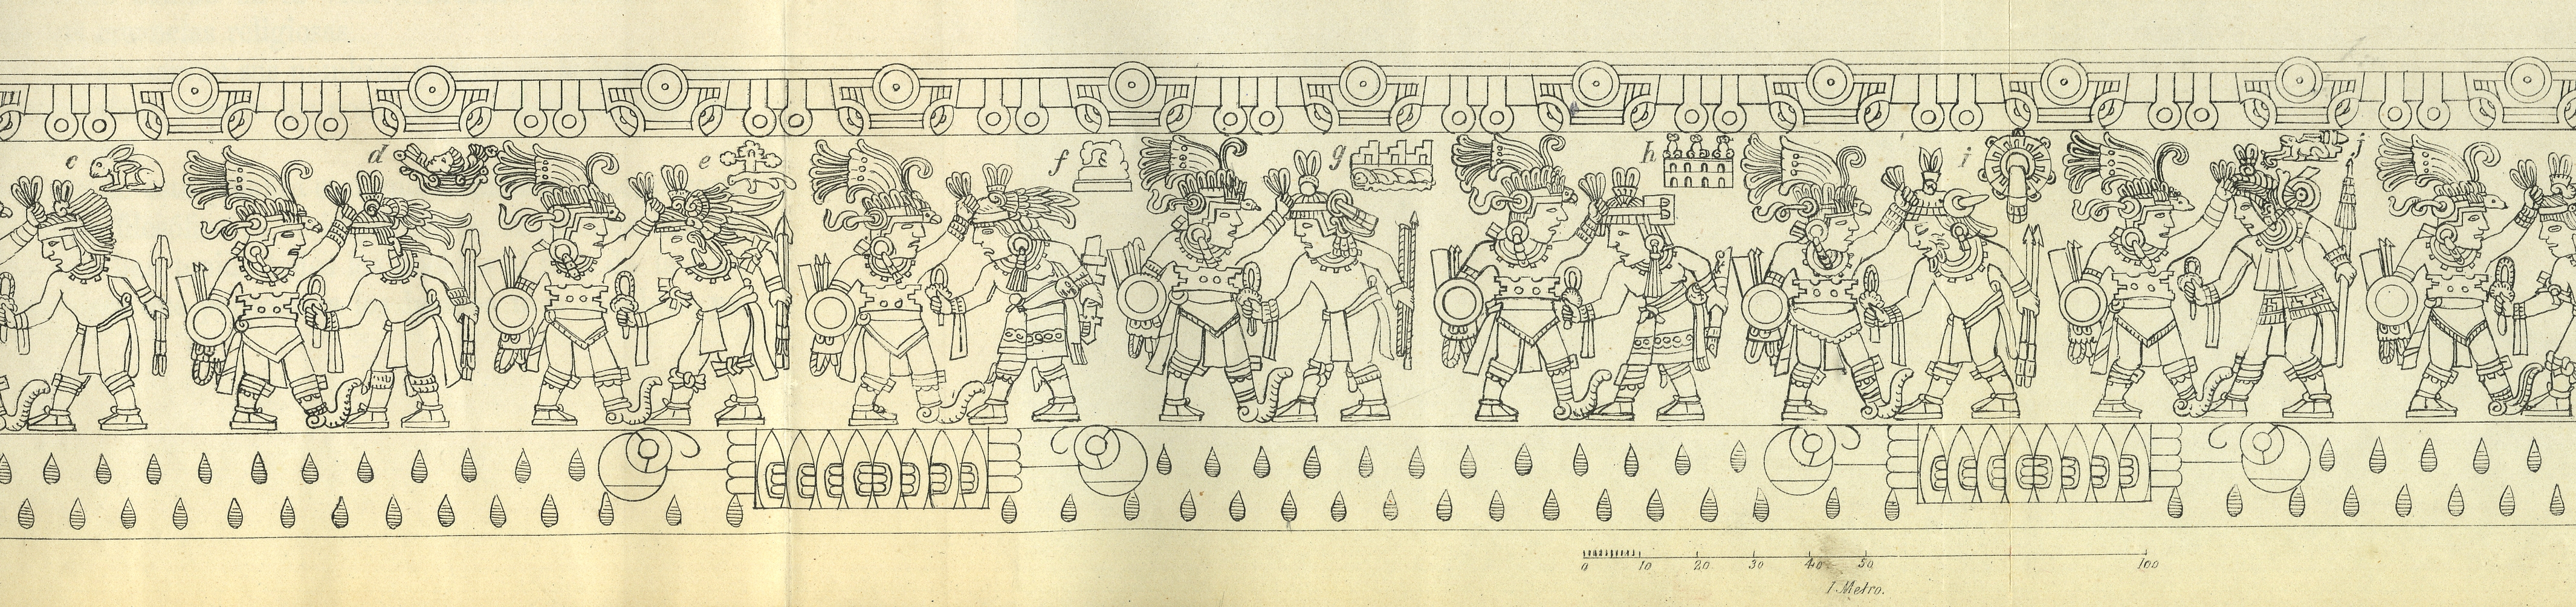 "FIGURE 7. Line drawing of the scenes that run around the edges of the Stone of Tizoc. Place signs have been labeled (in this detail) c-j. Note that the ground is represented as the personified Earth; two rectangular flint-filled mouths, each framed by round eyeballs, open up to the scenes of warfare above. From Manuel Orozco y Berra's 1877 ""El cuauhxicalli de Tizoc."""